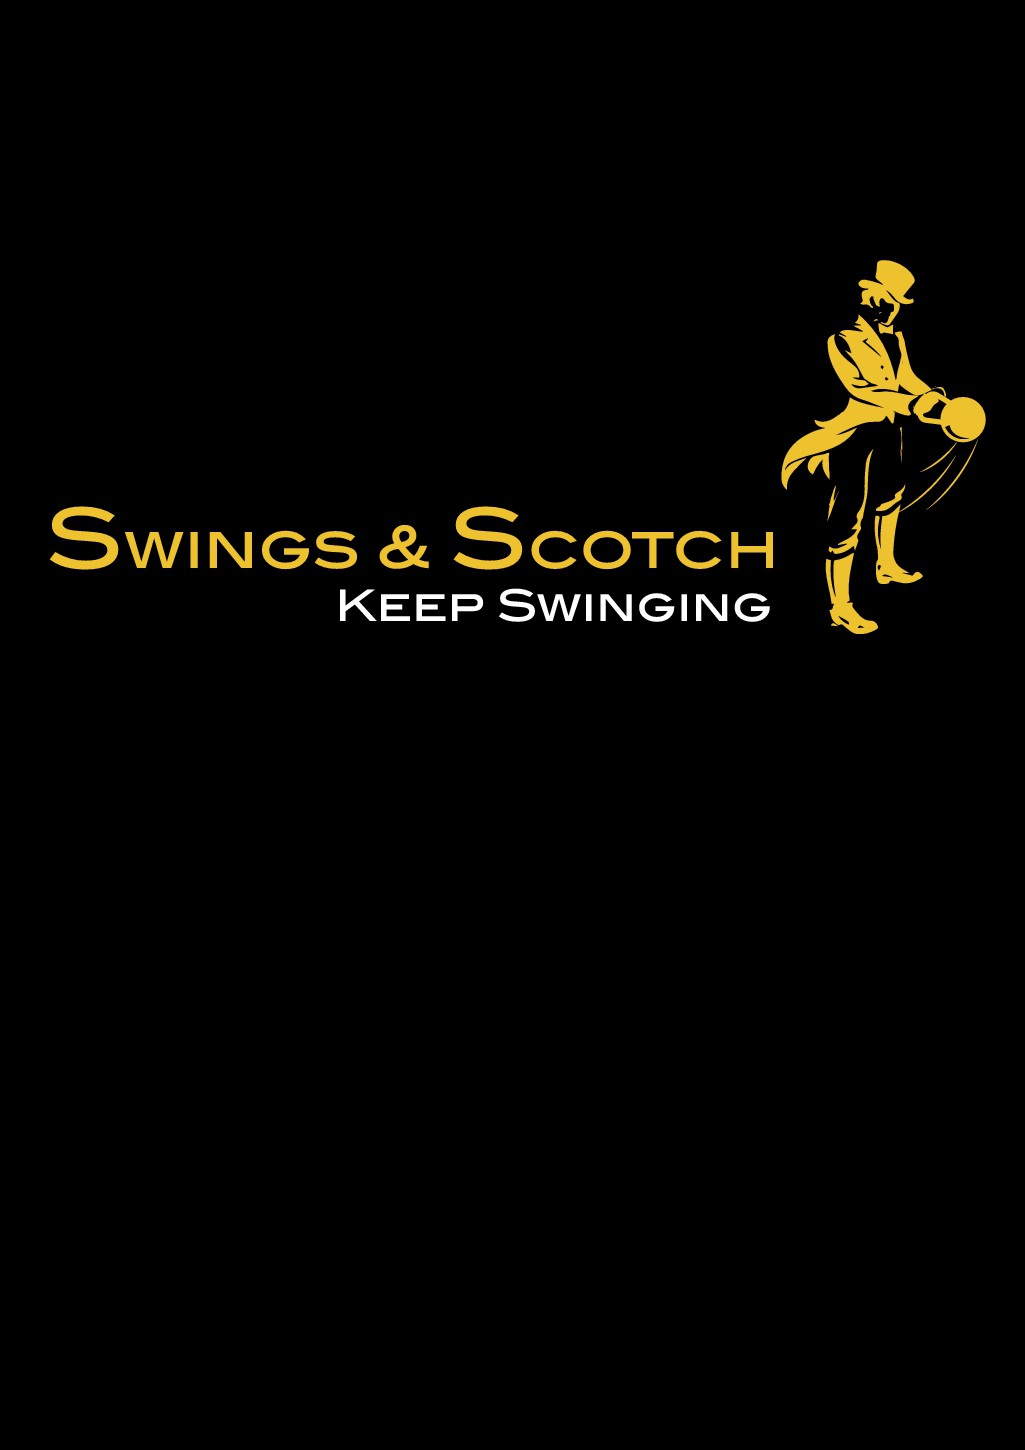 """Elegant design to attract Fitness & Alcohol enthusiasts; labeled """"Swings & Scotch"""""""